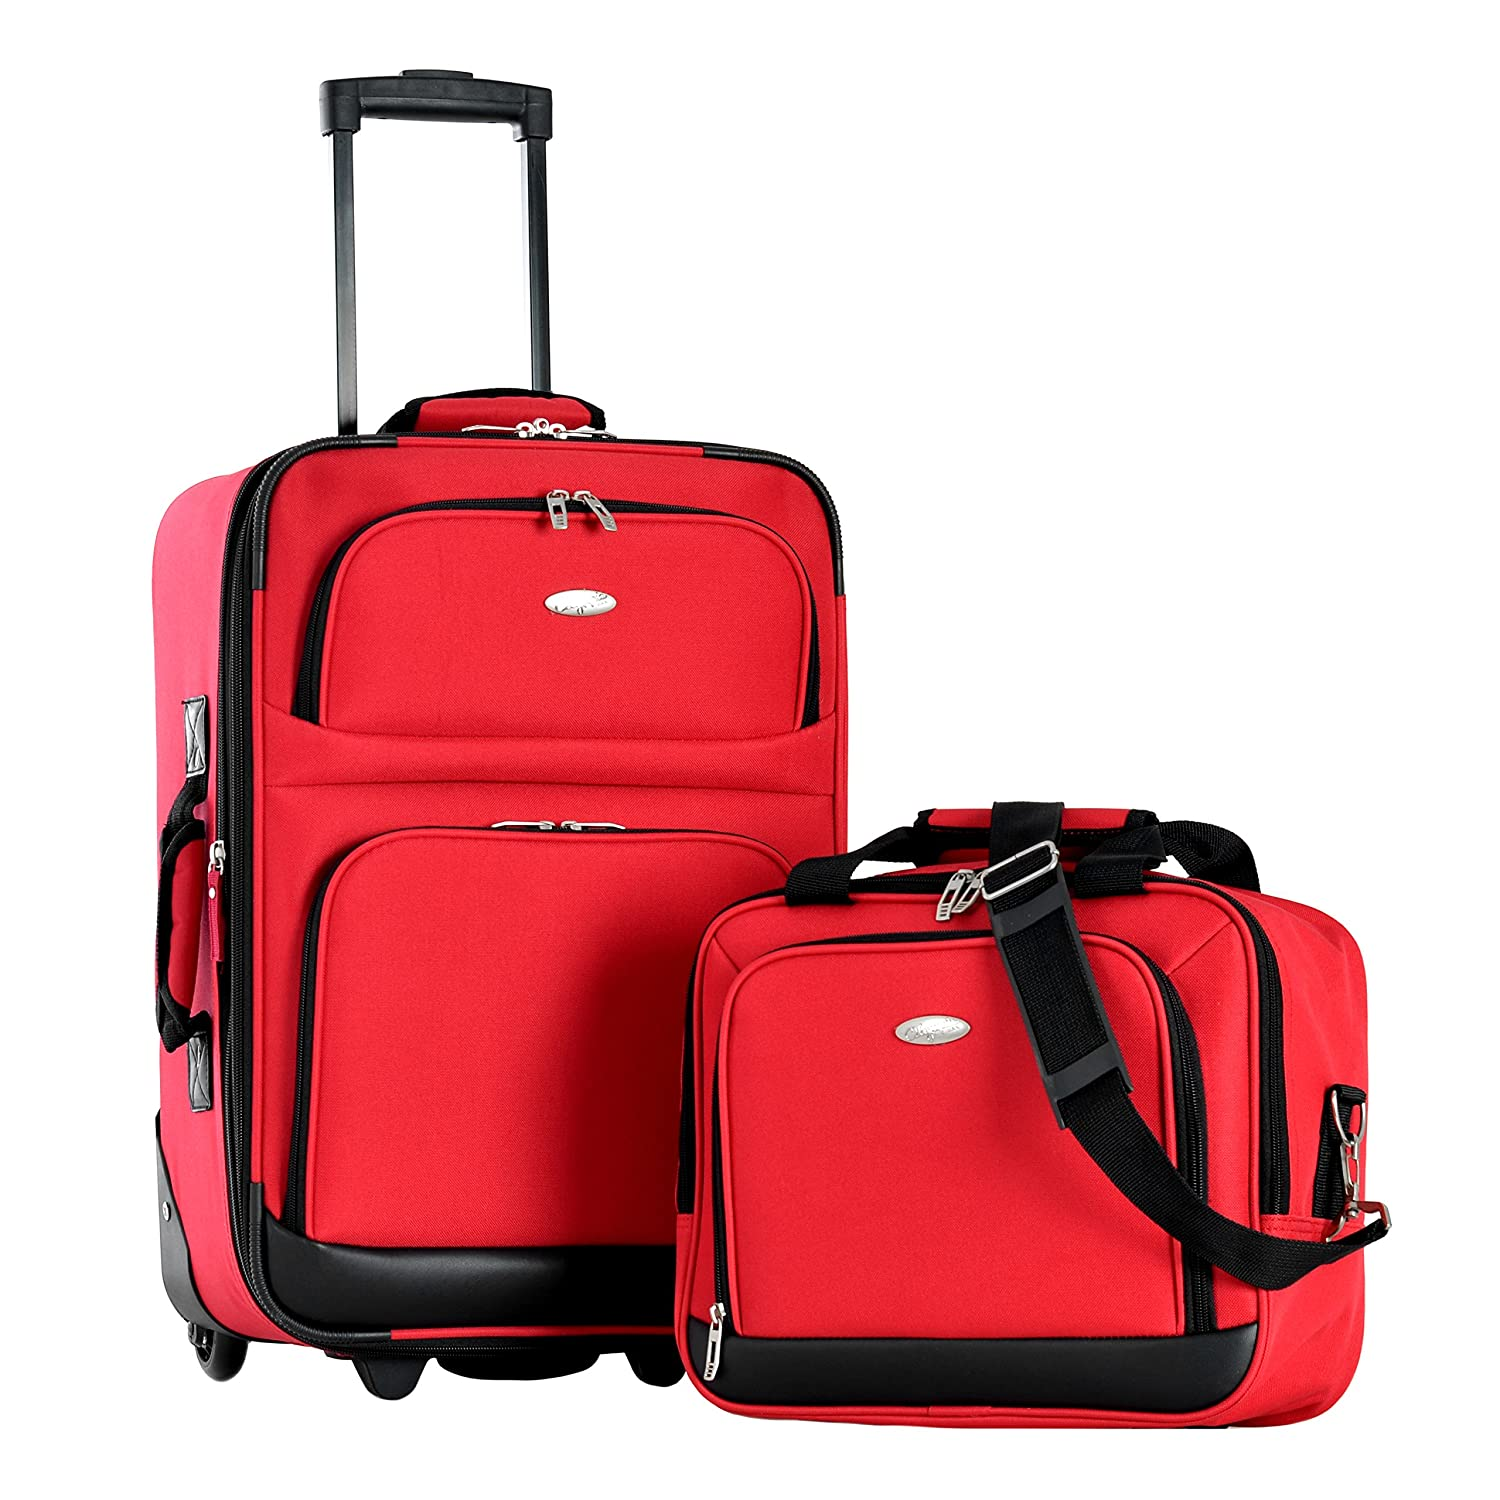 Olympia Let's Travel 2 Piece Carry-On Luggage Set, Spiral Olympia Luggage OP-1000